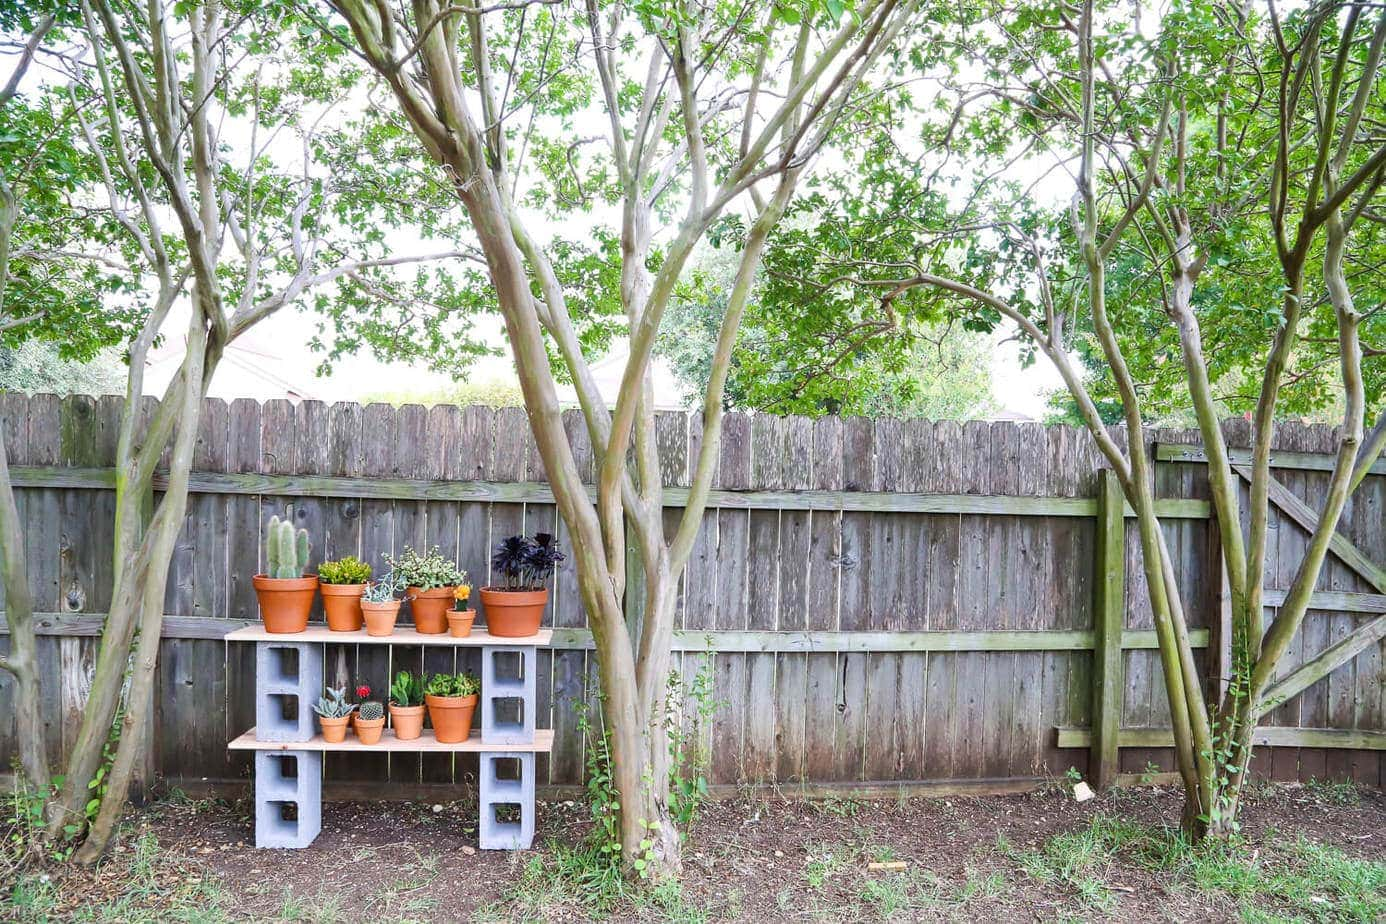 Outdoor cinder block shelves